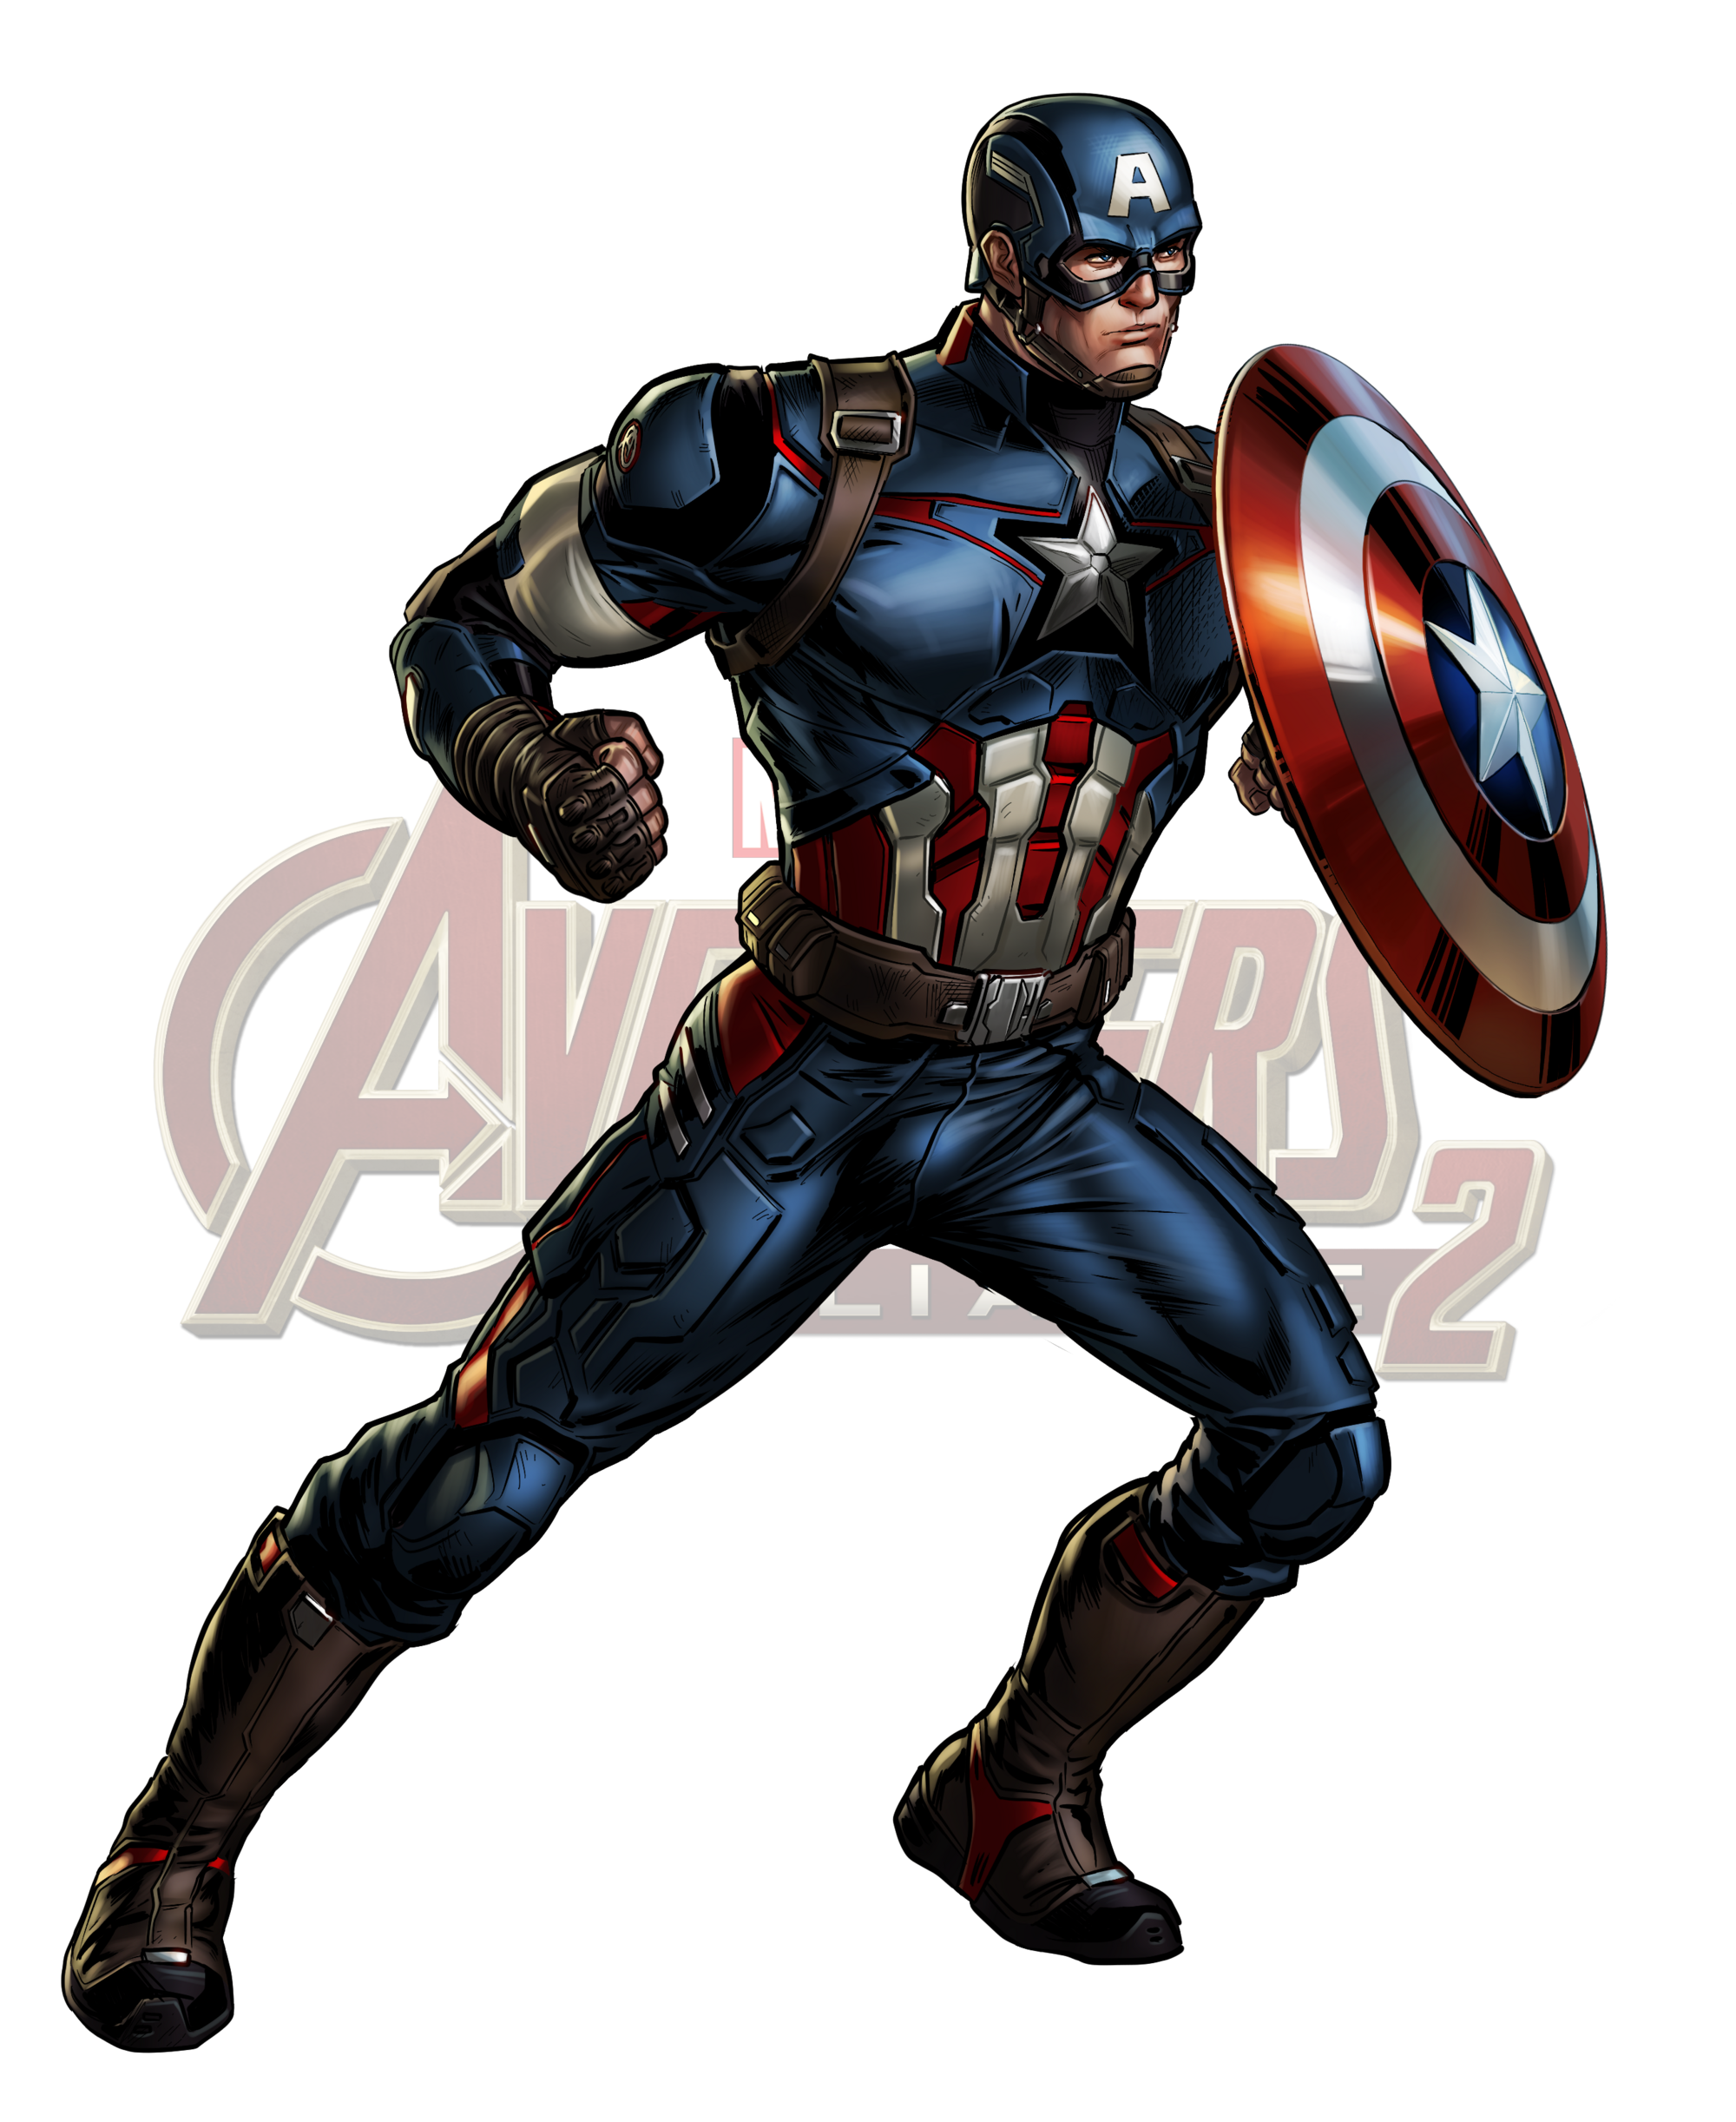 age of ultron captain america marvel avengers alliance 2 wikia fandom powered by wikia. Black Bedroom Furniture Sets. Home Design Ideas